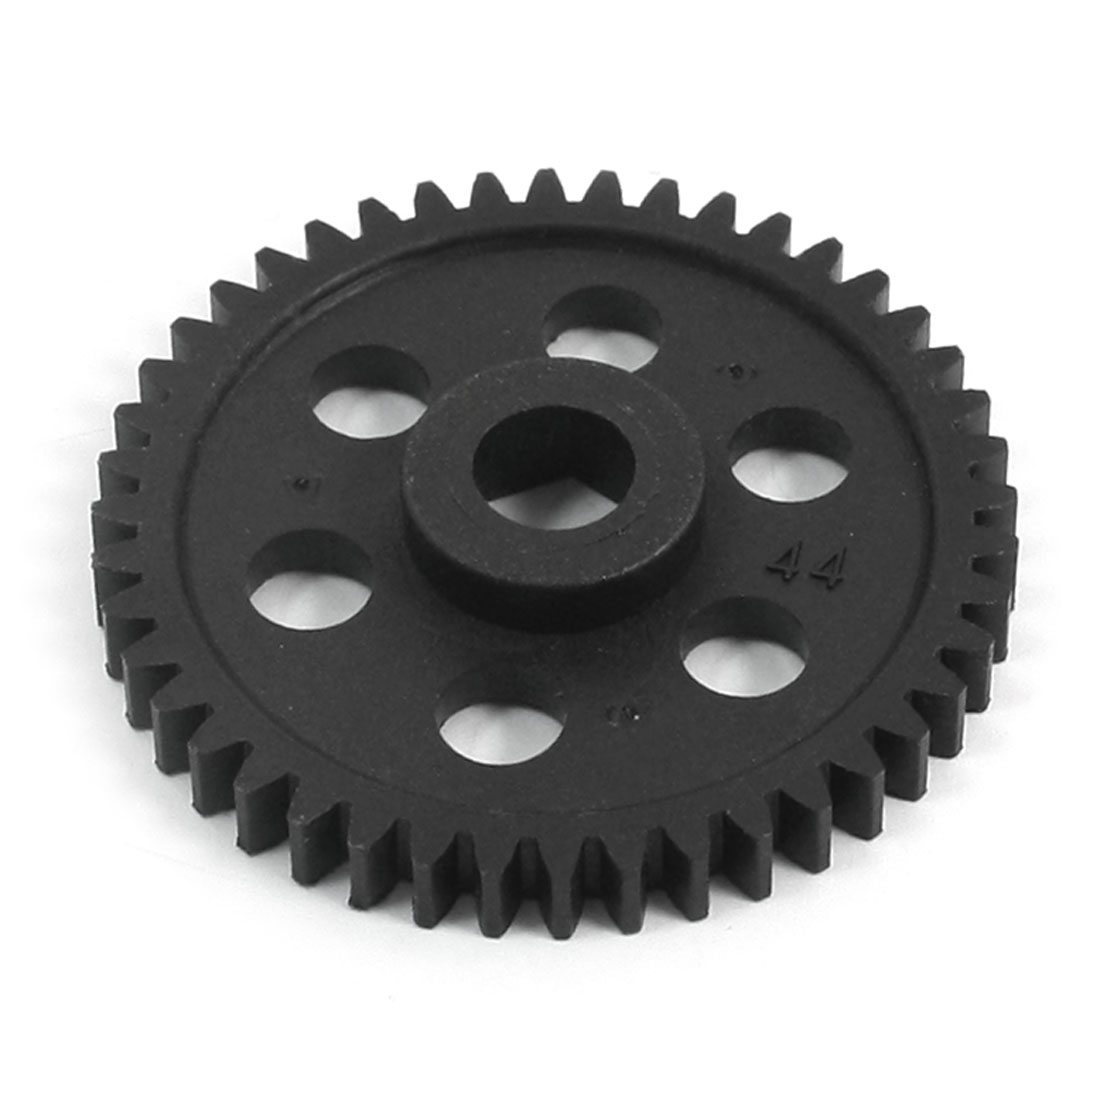 02040 Plastic Differential Main Gear 44T for Racing RC 1/10 Model Car